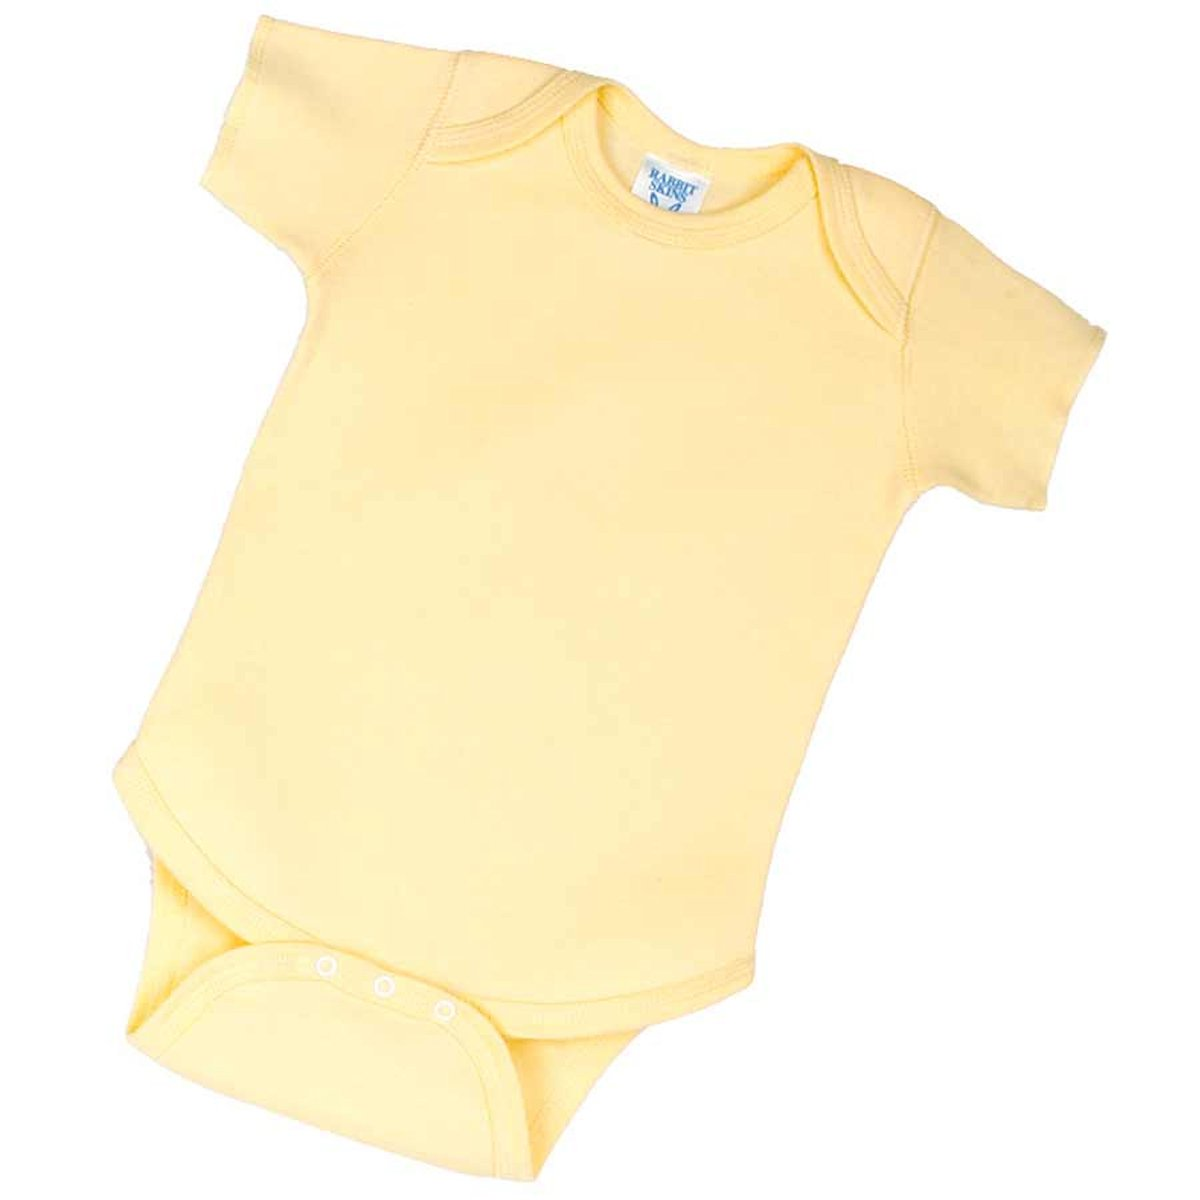 10 RABBIT SKIN INFANT ONESIE Wholesale To Public Choose colors sizes Newborn 6M 12M 18M 24M #4400